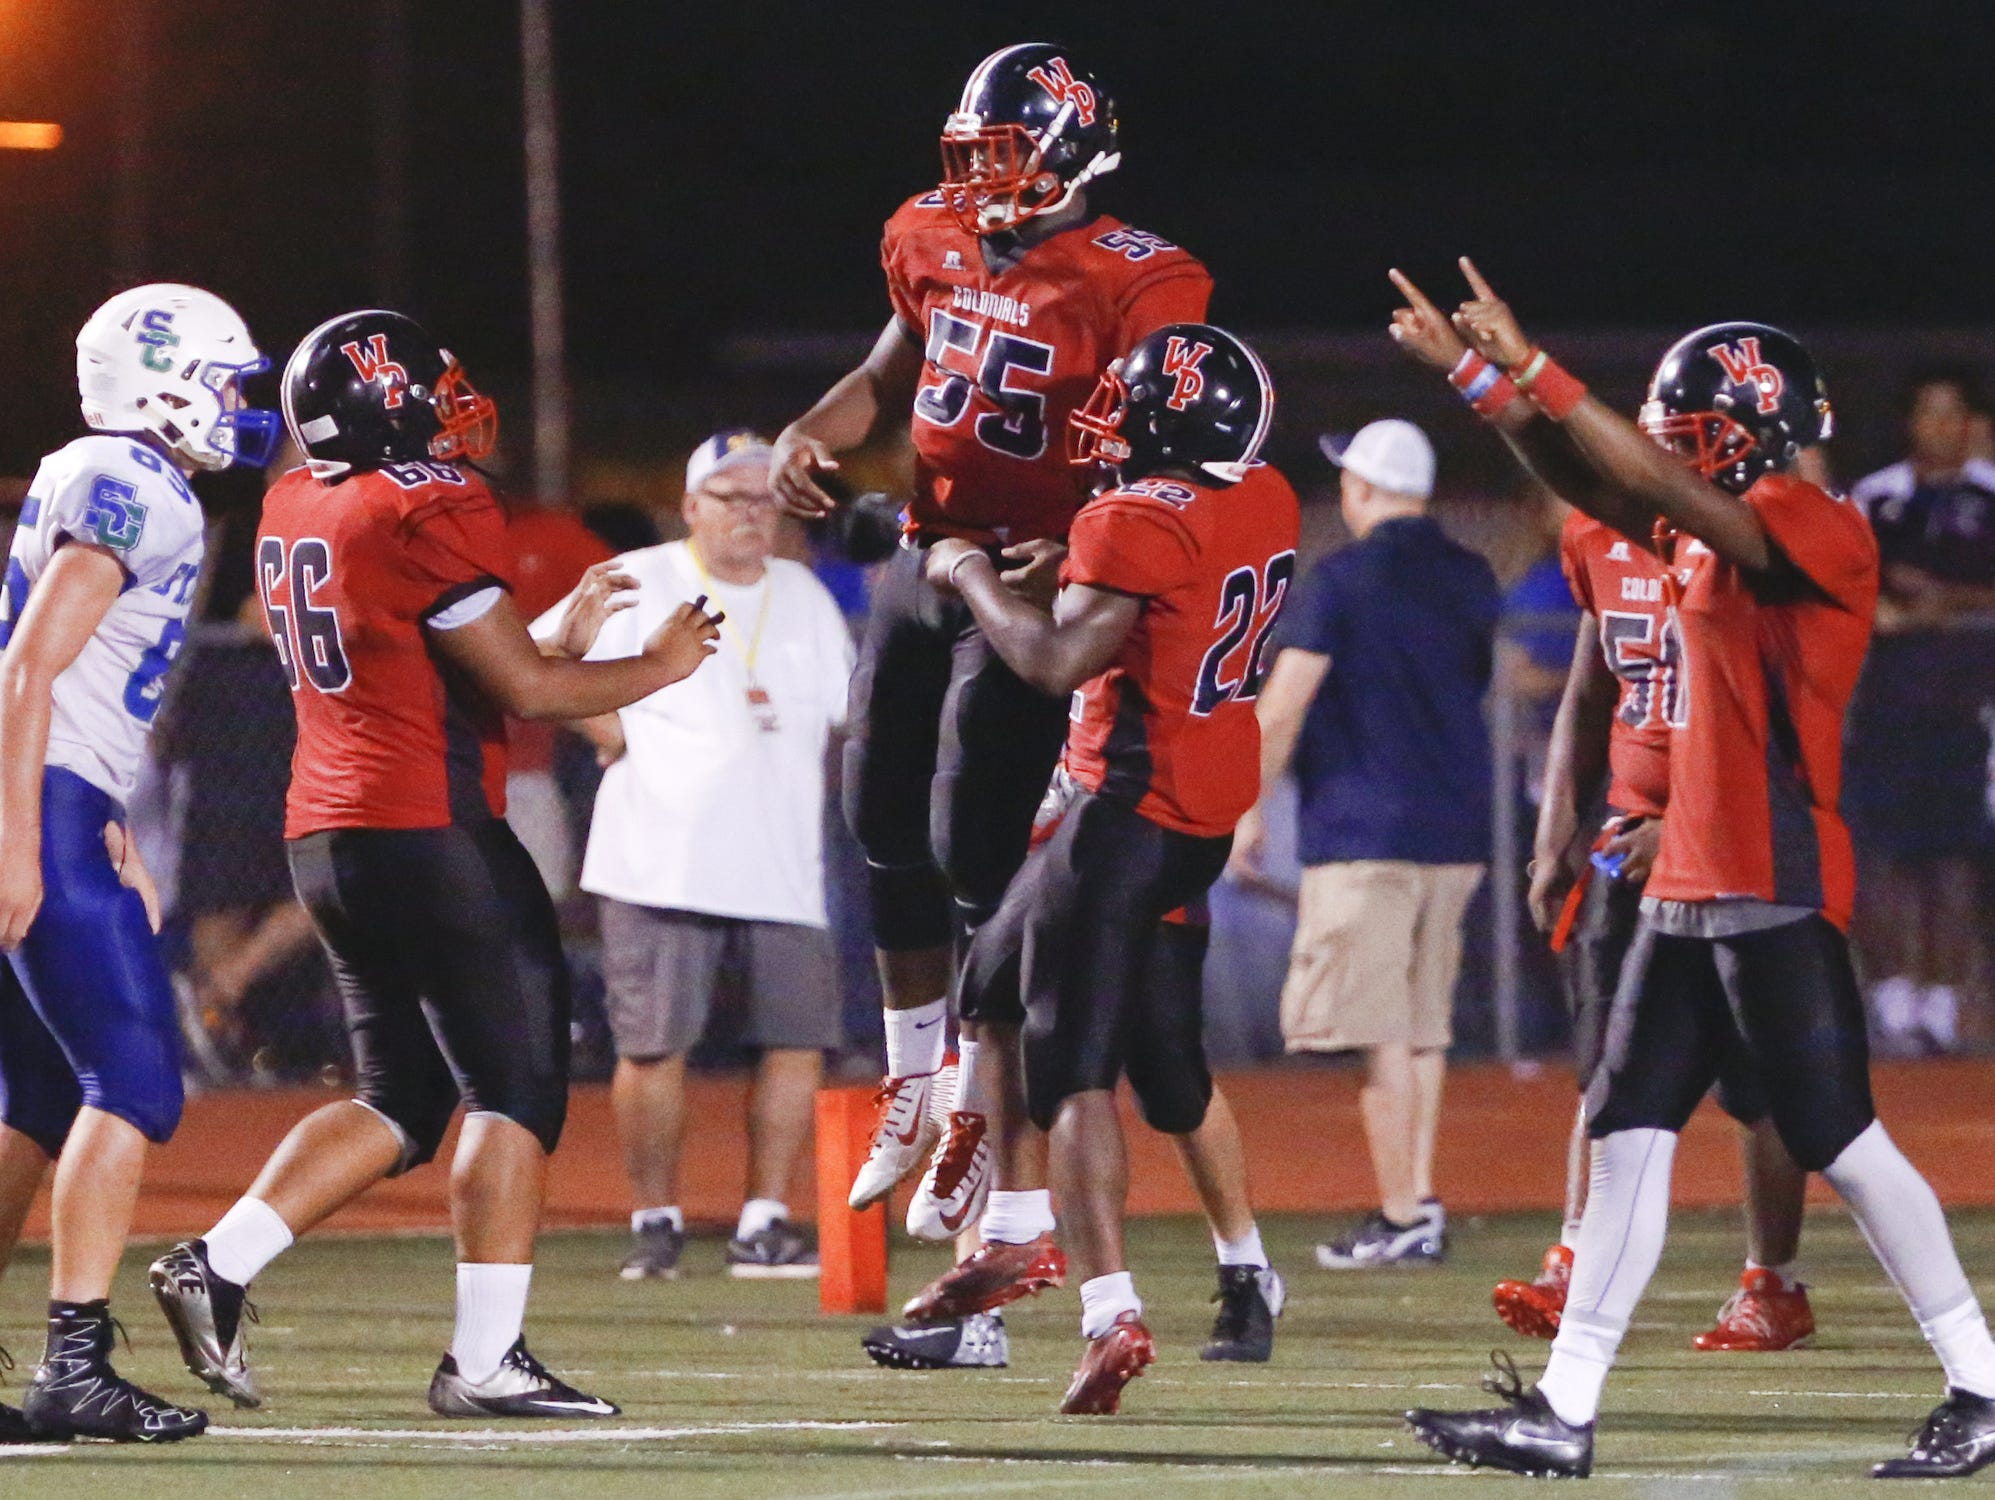 The William Penn defense celebrates a fumble return for a touchdown by Charles Hope (55), a huge play in the Colonials' 27-24 victory over St. Georges last Friday.